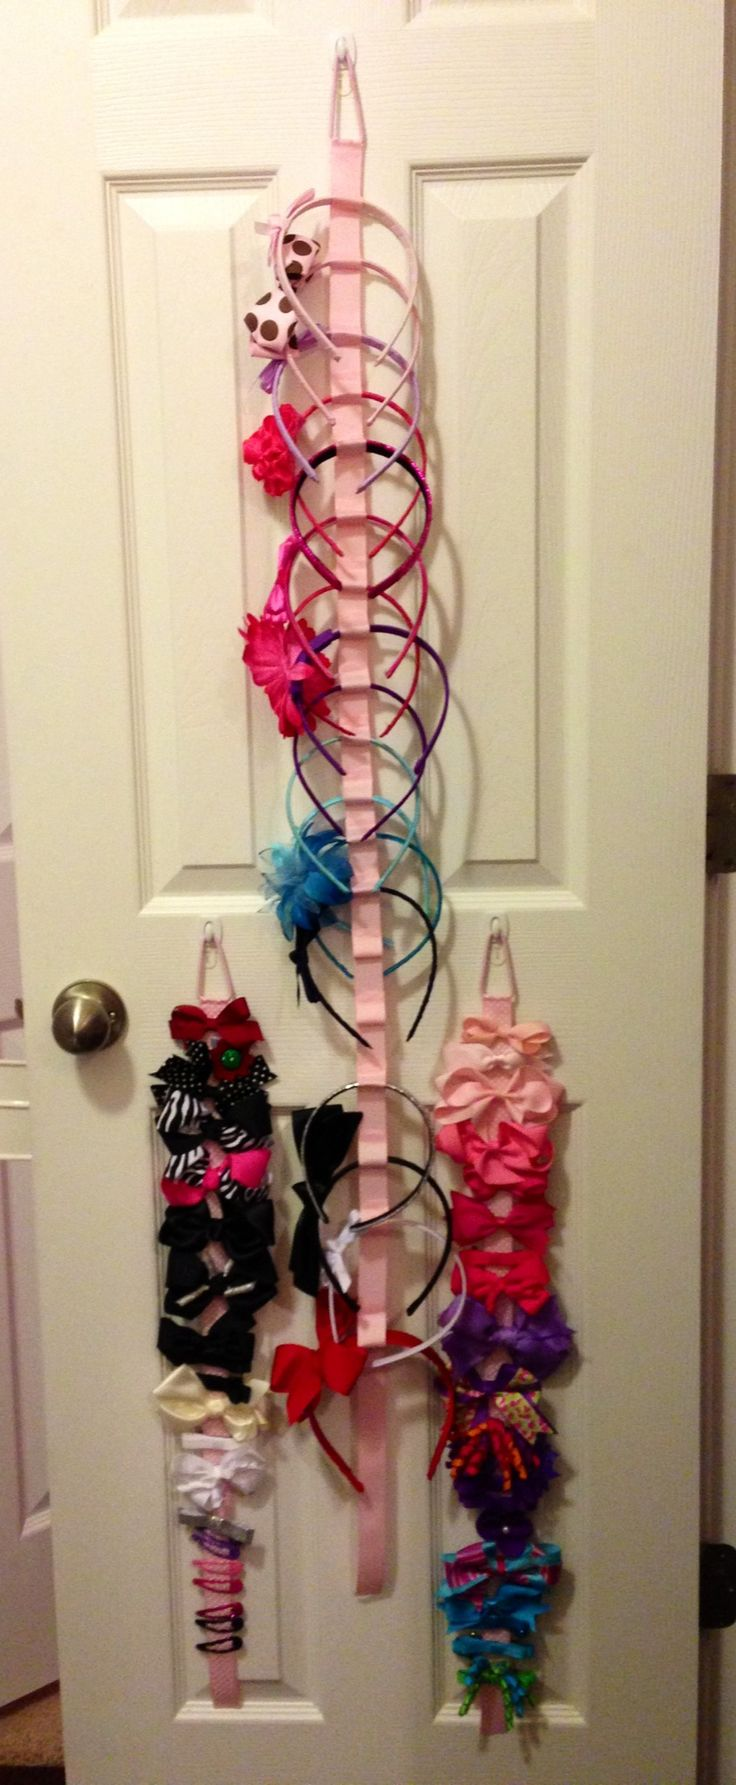 Hair accessory organization made from ribbon, ponytail holders and hot glue. Easy, inexpensive and controls clutter.